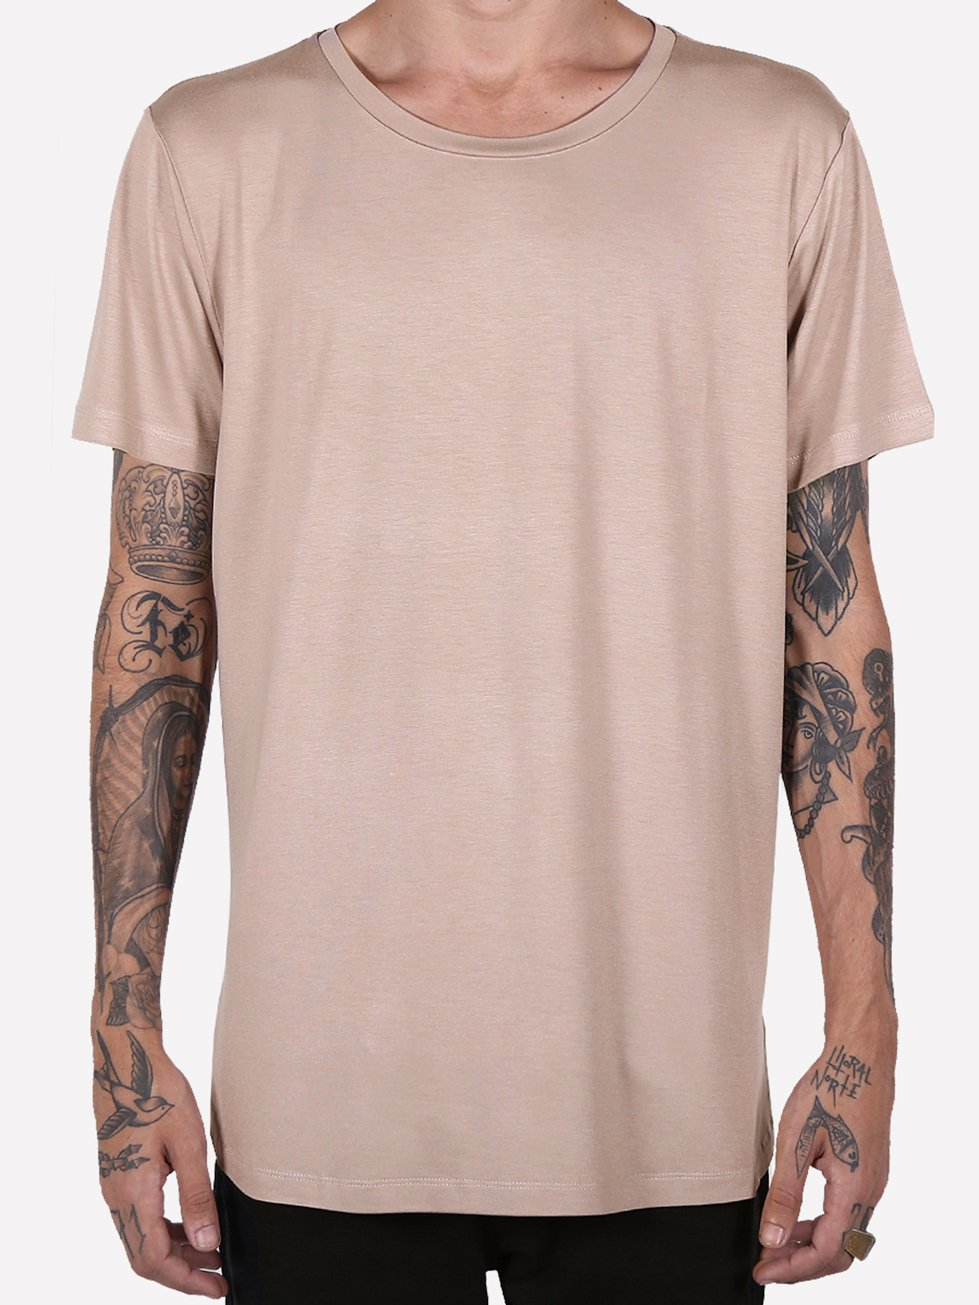 Foto do Camiseta OLIV Long Tee Nude